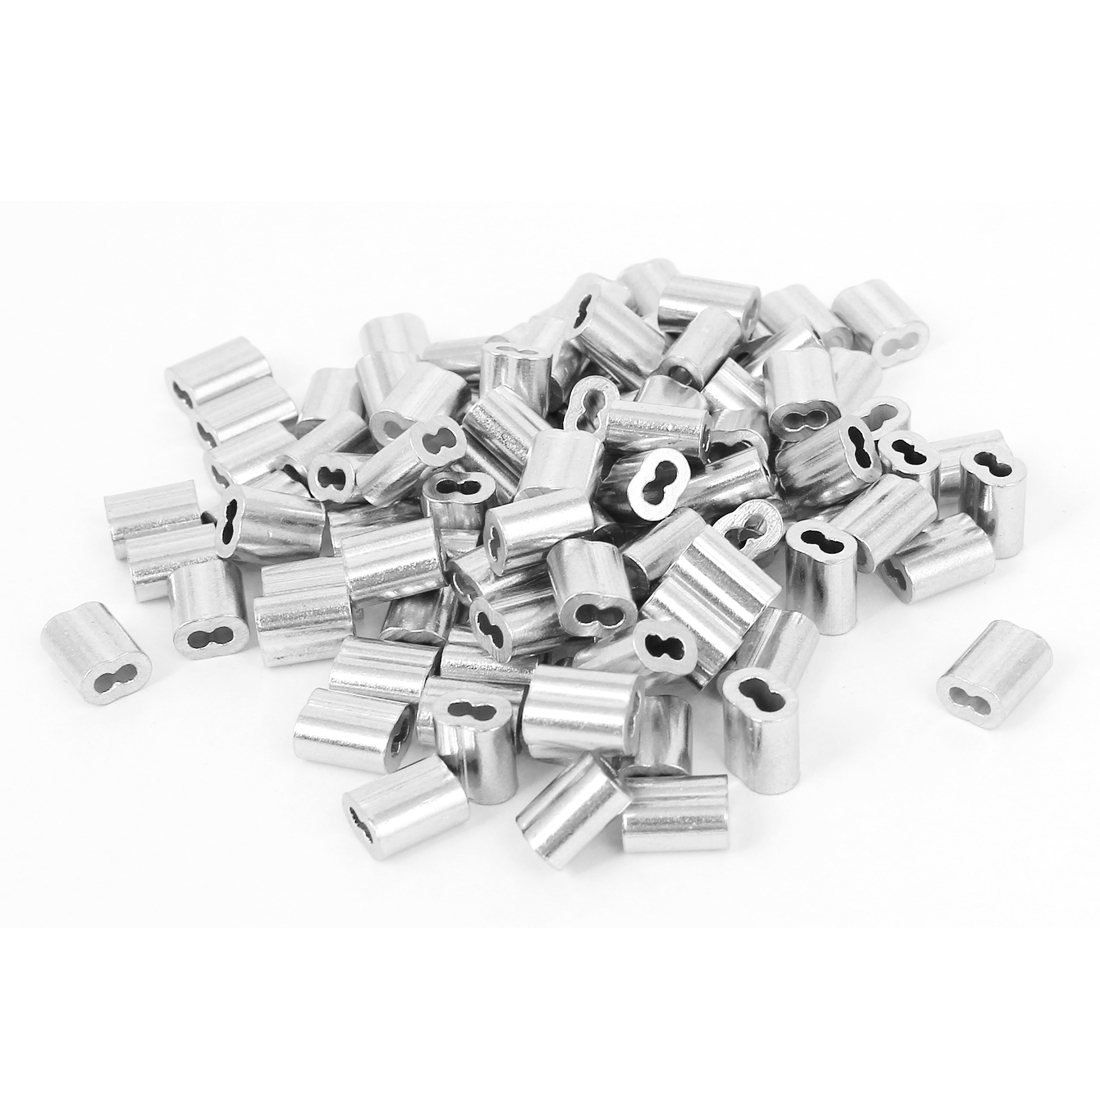 "UXCELL 100 Pcs/lot 9x7x5mm Wire Rope Aluminum Sleeves Clip Fittings Cable Crimps Fit For Steel Wire Rope Dia 1.8mm/1/16""(China)"